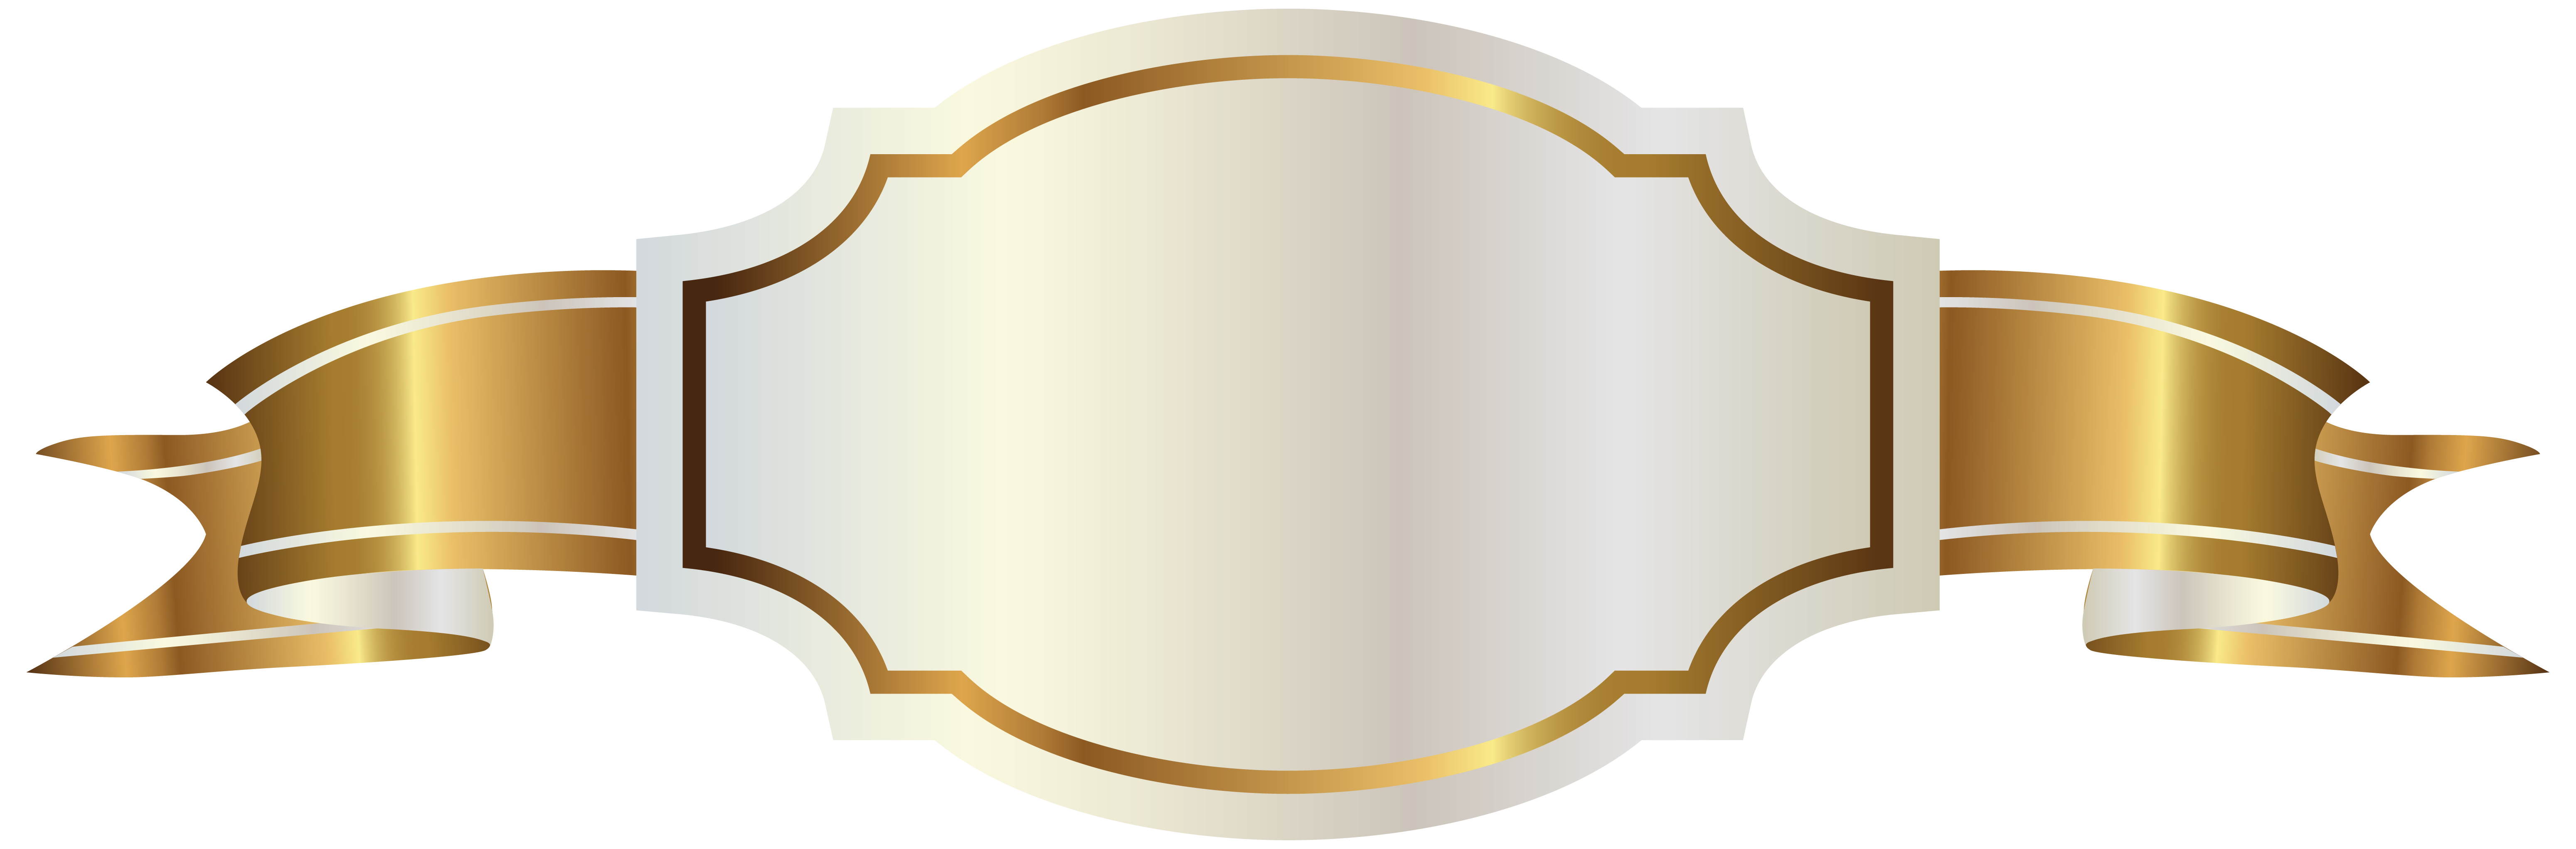 Elegant gold banner png. White label and clipart